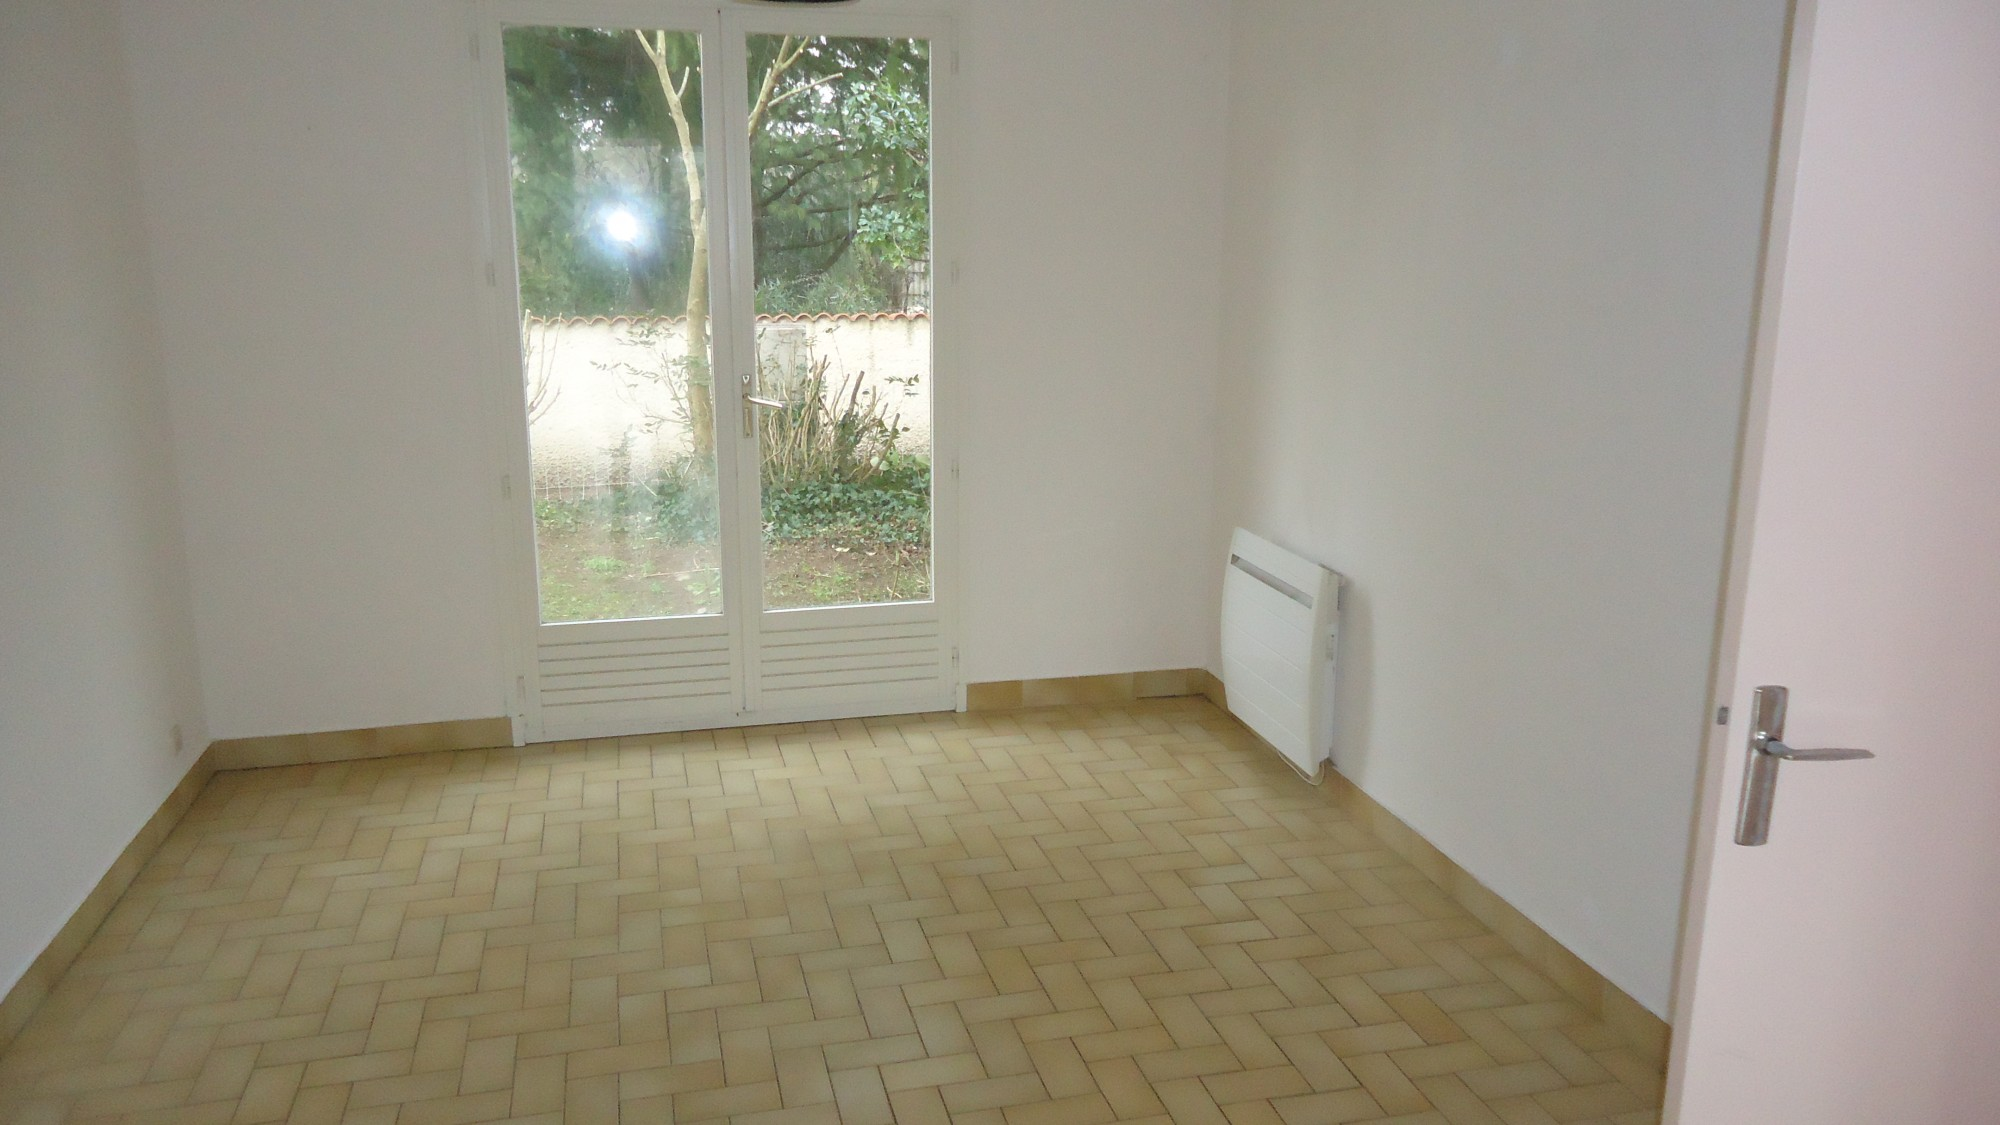 Maison 3 chambres louer sur malissard location agence for Agence immobiliere maison a louer